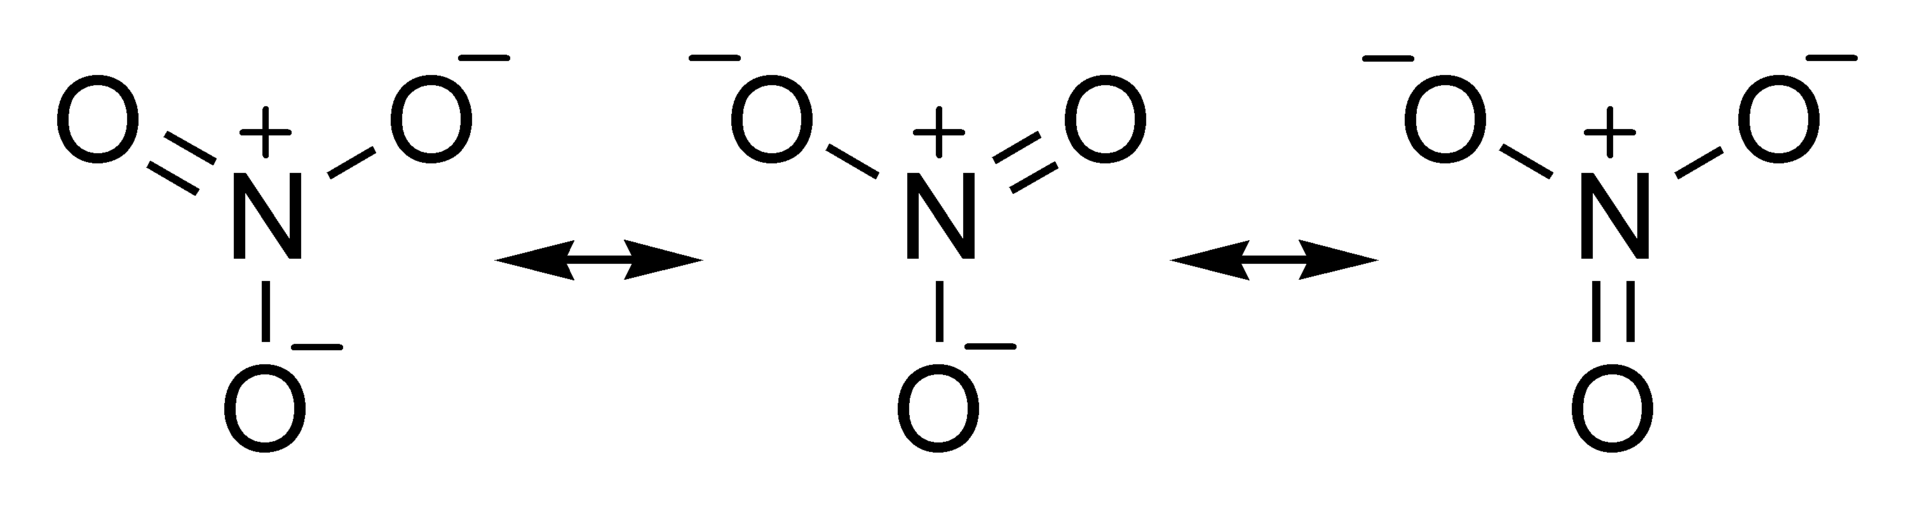 Nitrate_ion_resonance_structures